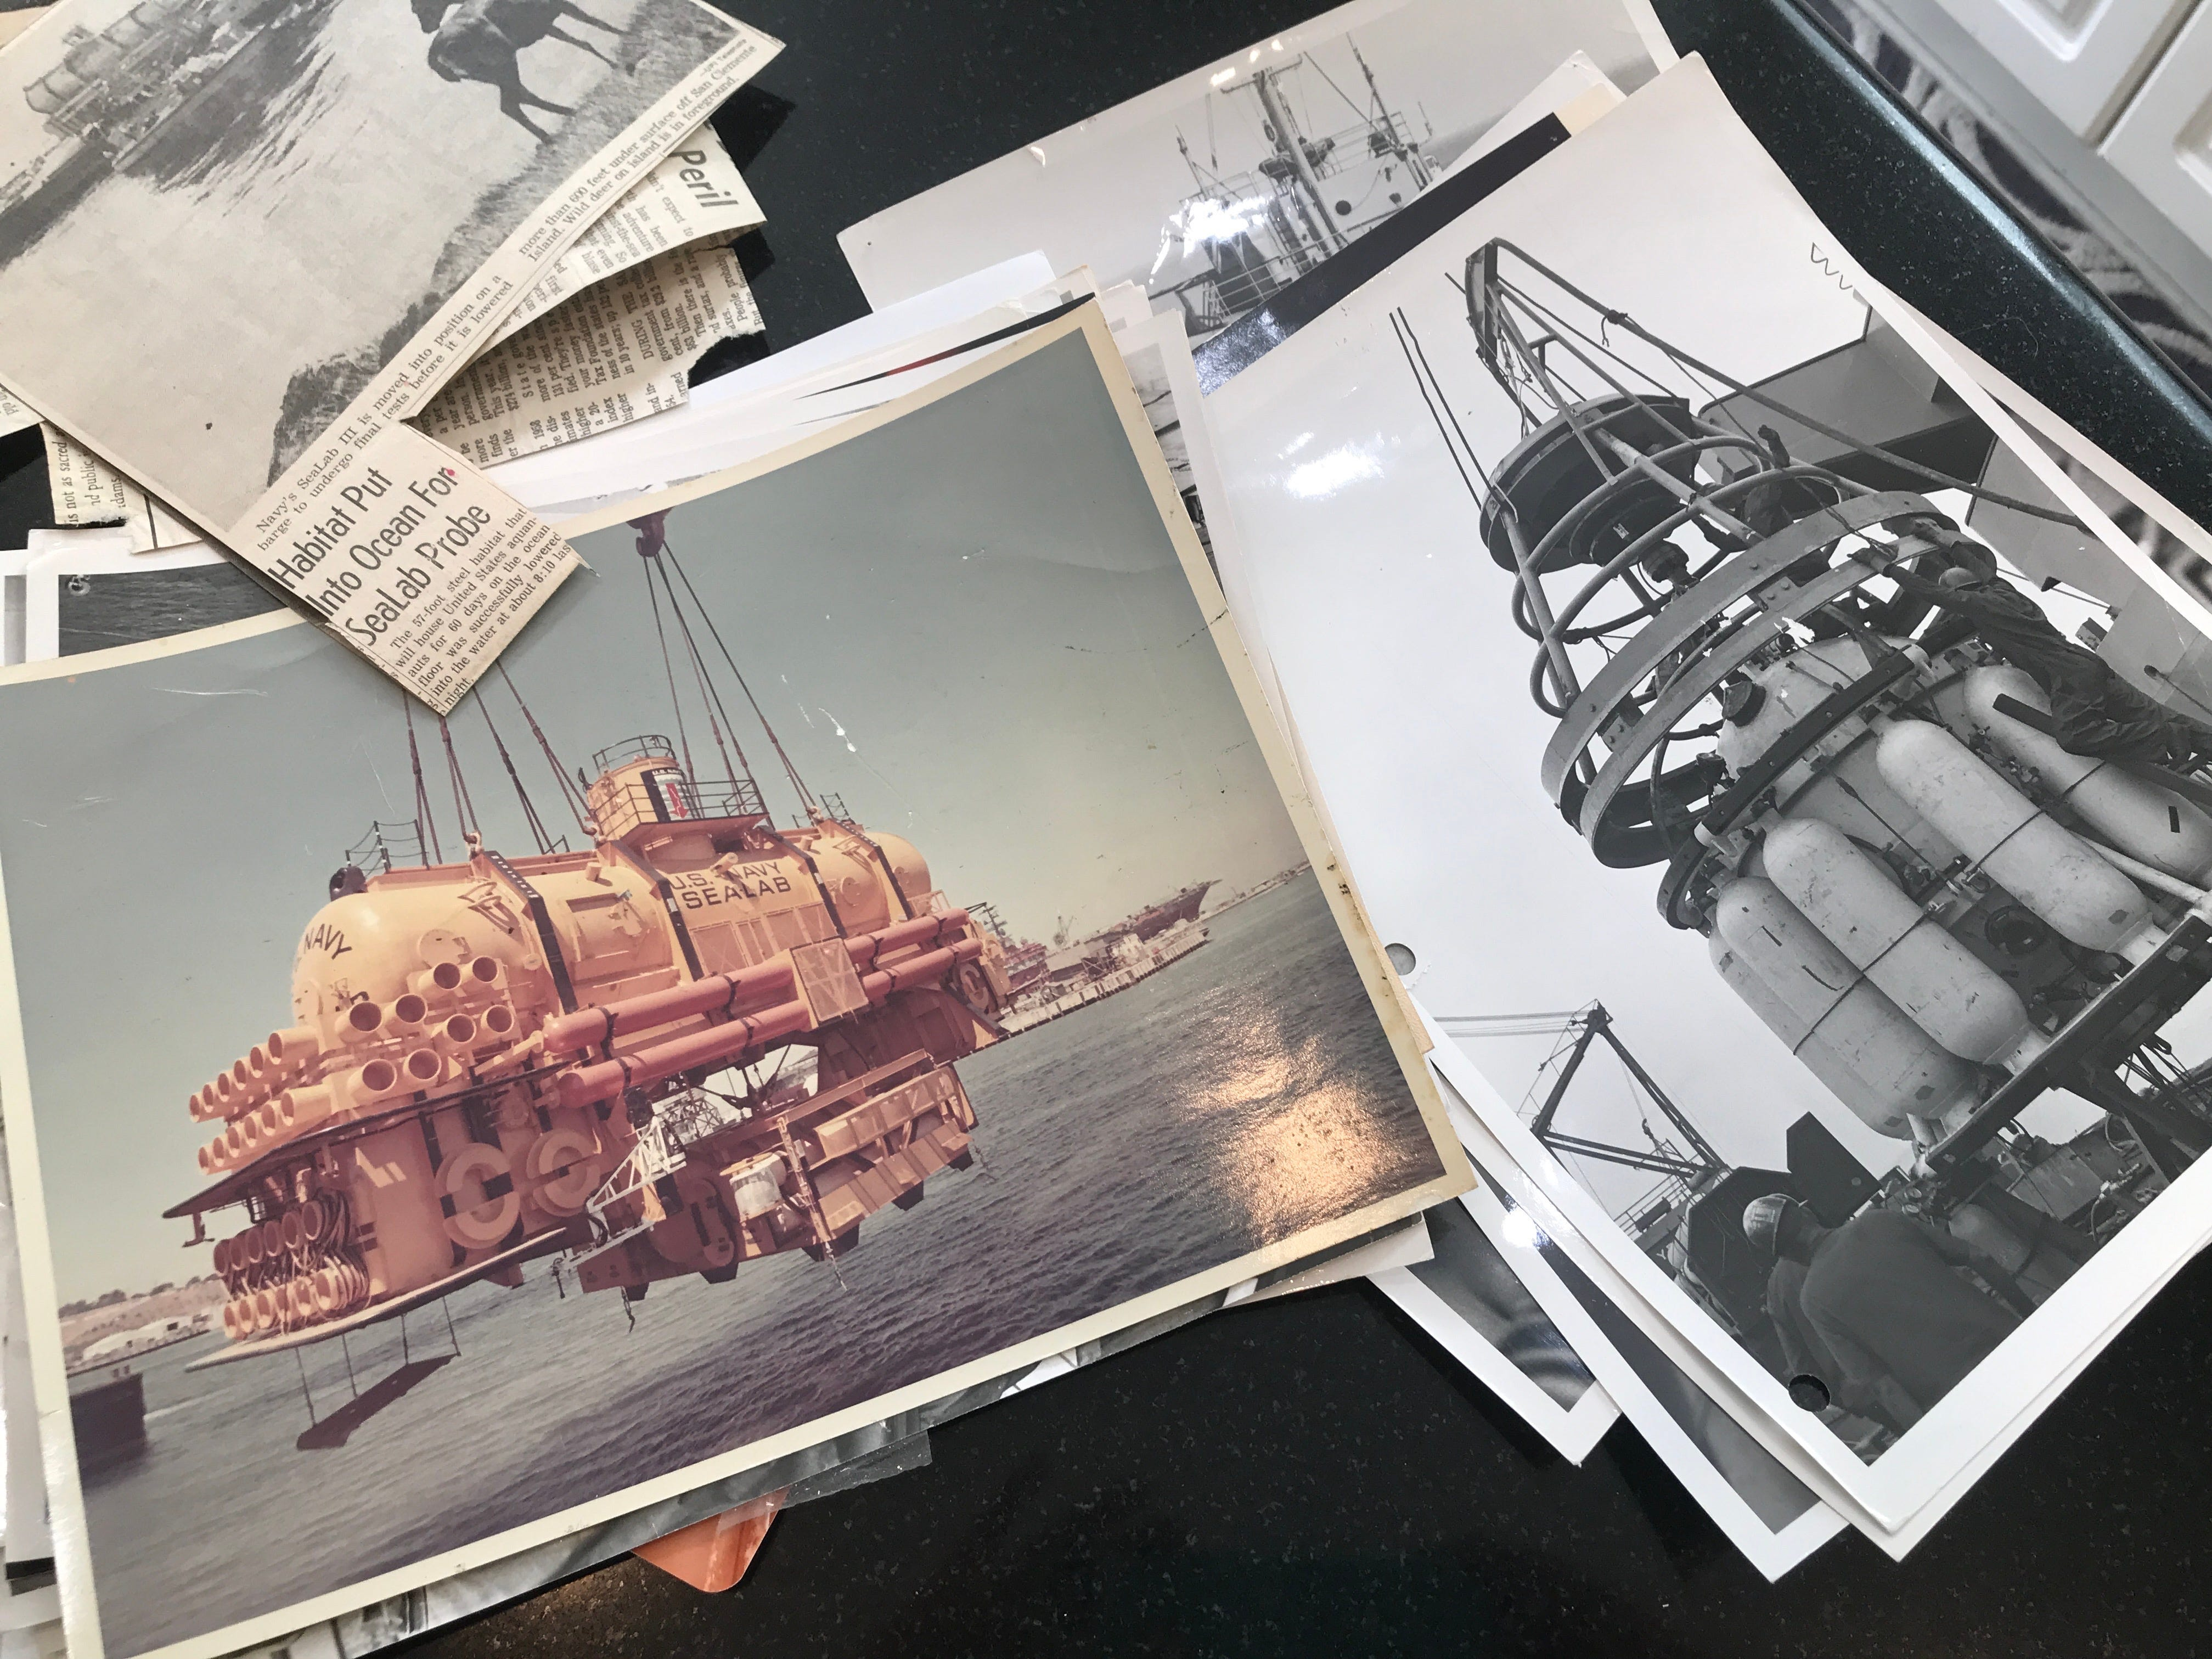 Photos of Sealab 3 and the capsule used to lower aquanauts hundreds of feet below the ocean.